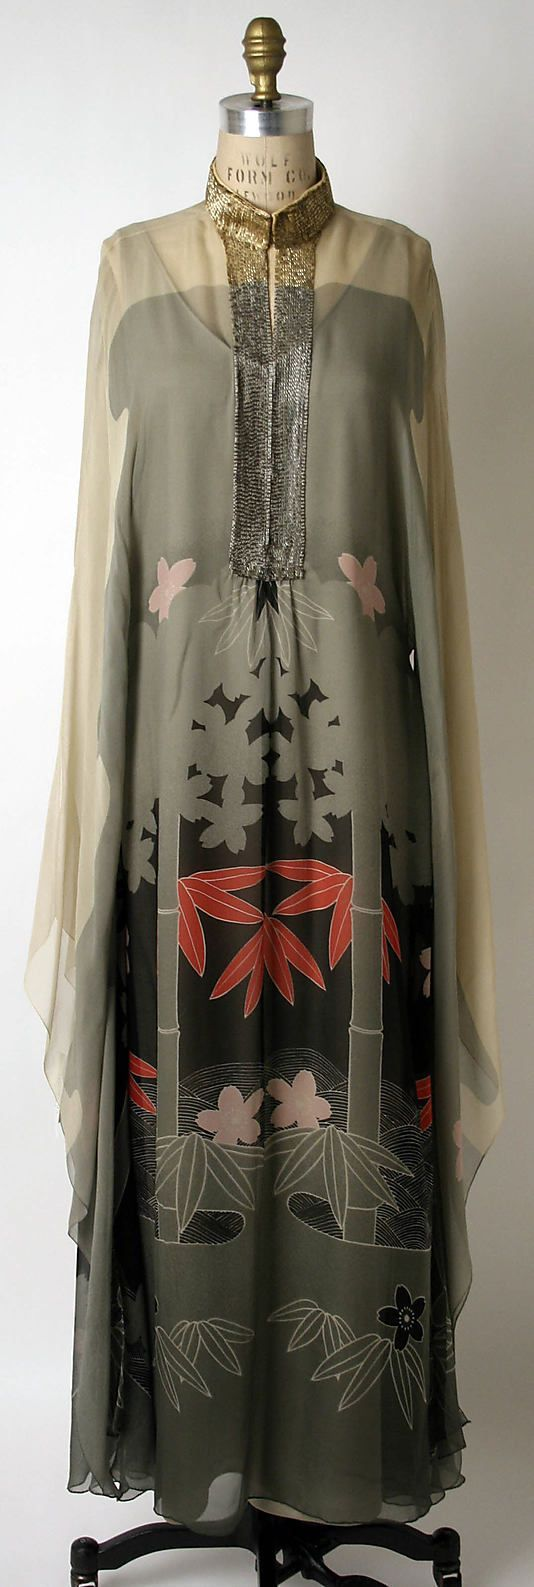 1975 Japanese Evening dress at the Metropolitan Museum of Art, New York